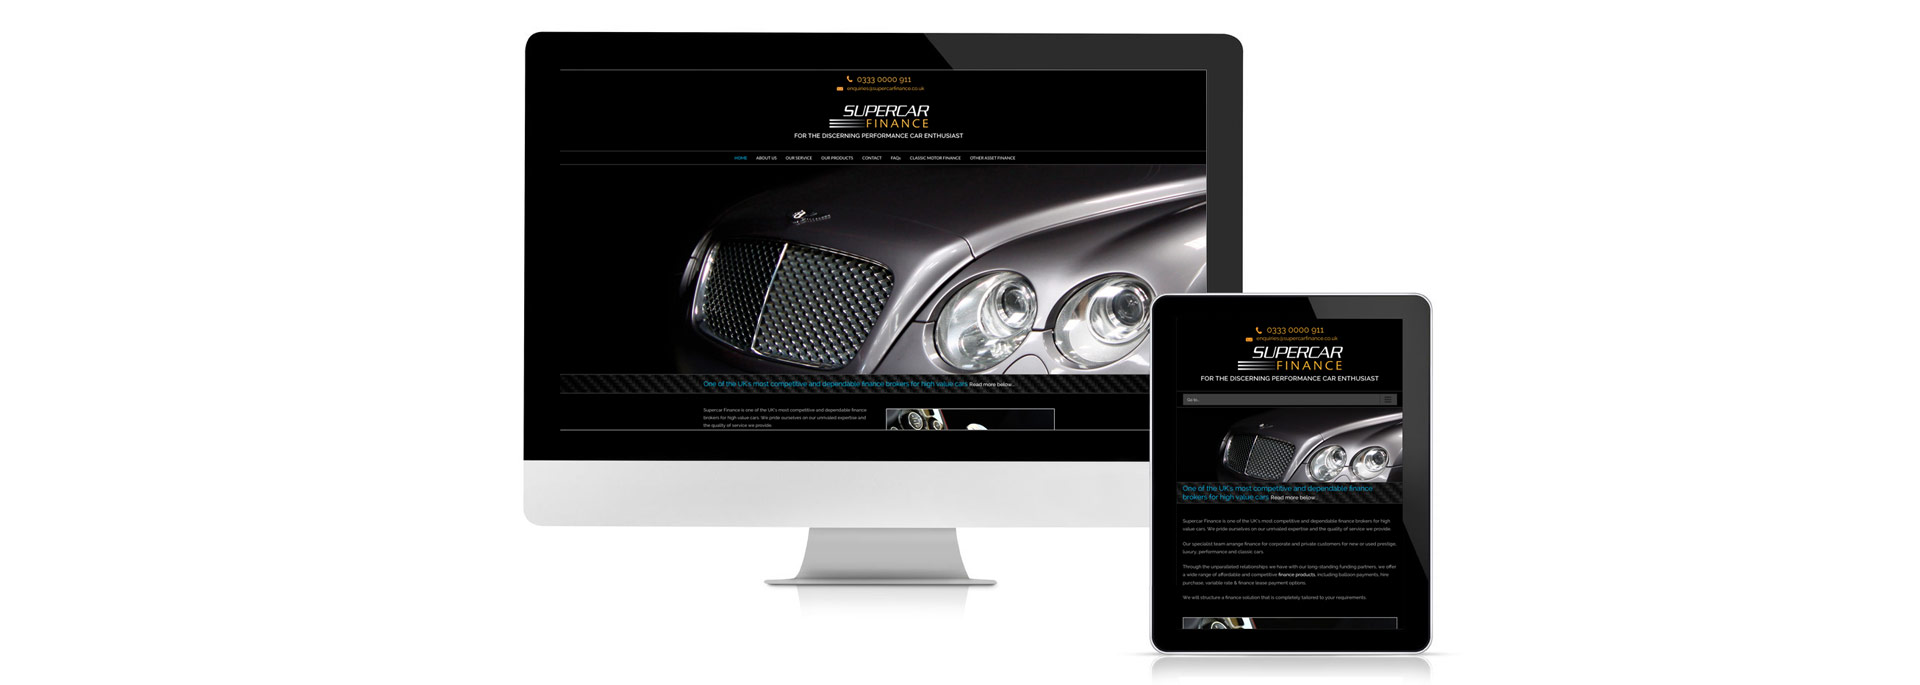 Supercar Finance brand and website design